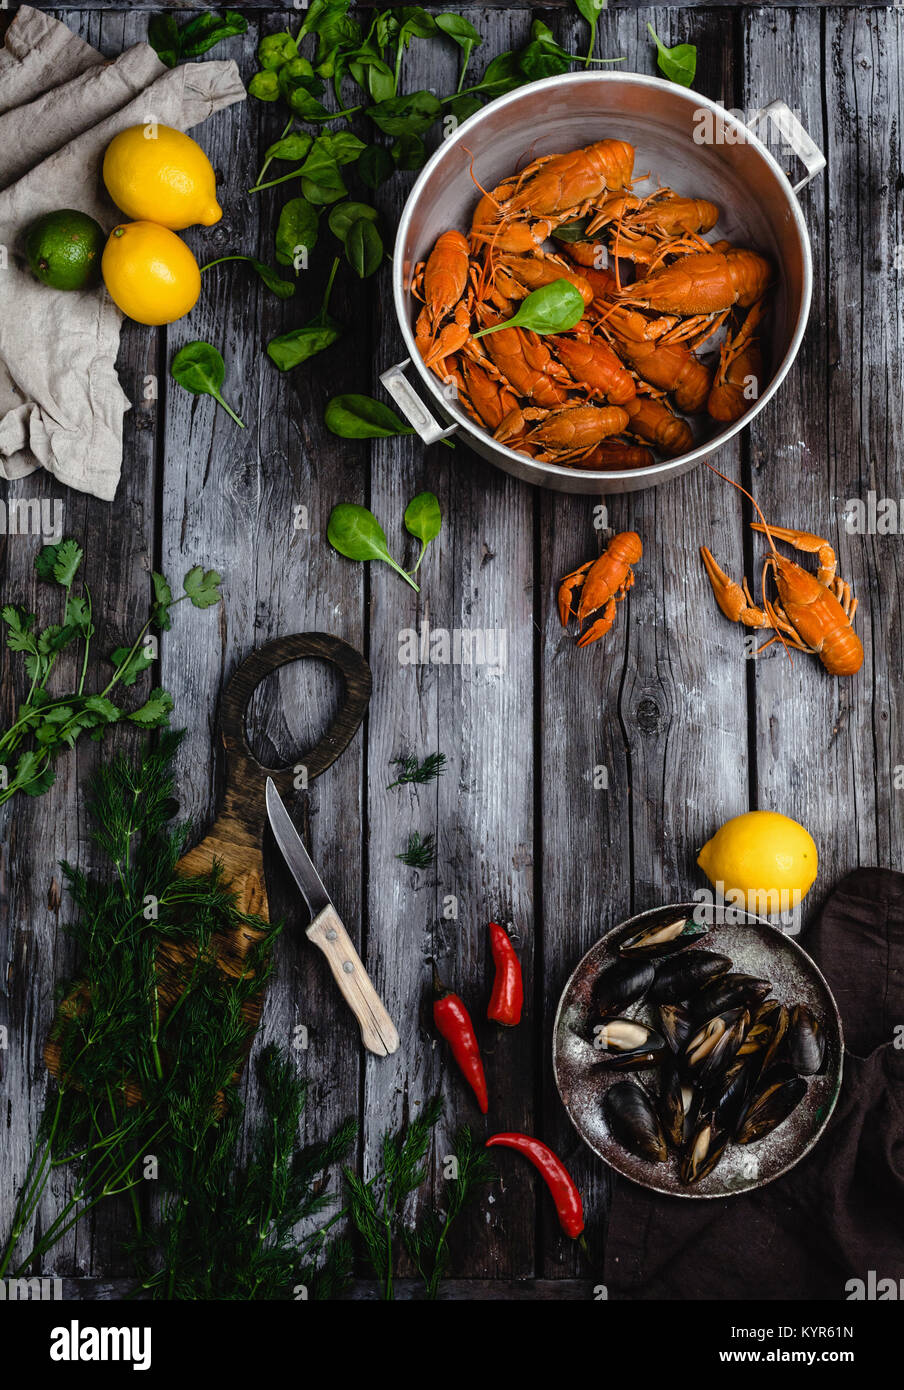 top view of lobsters and mussels in pans and citrus fruits with herbs on rustic wooden table - Stock Image